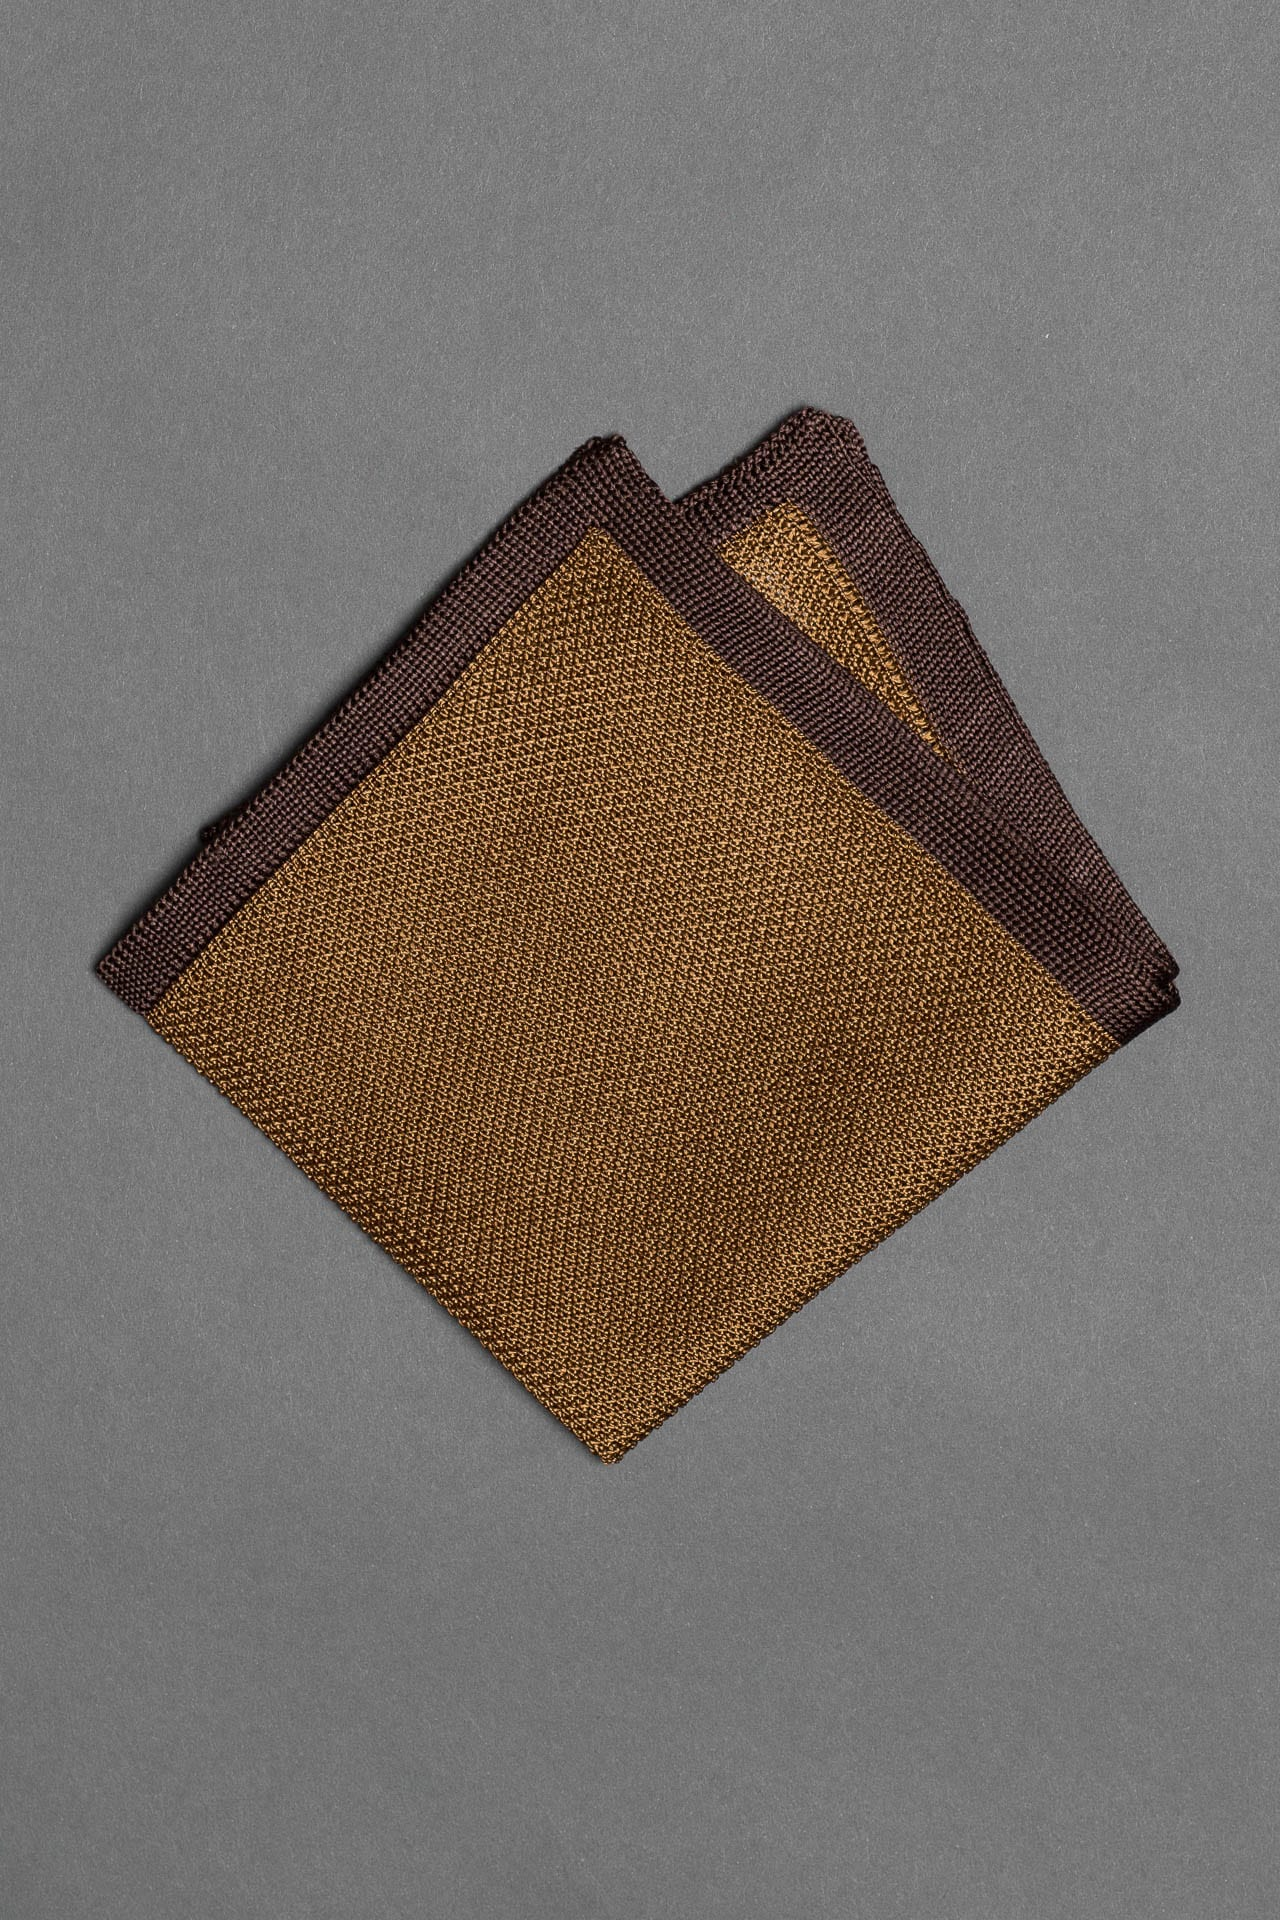 silk-knitted-pocket-square-brown-with-dark-brown-frame-made-in-italy